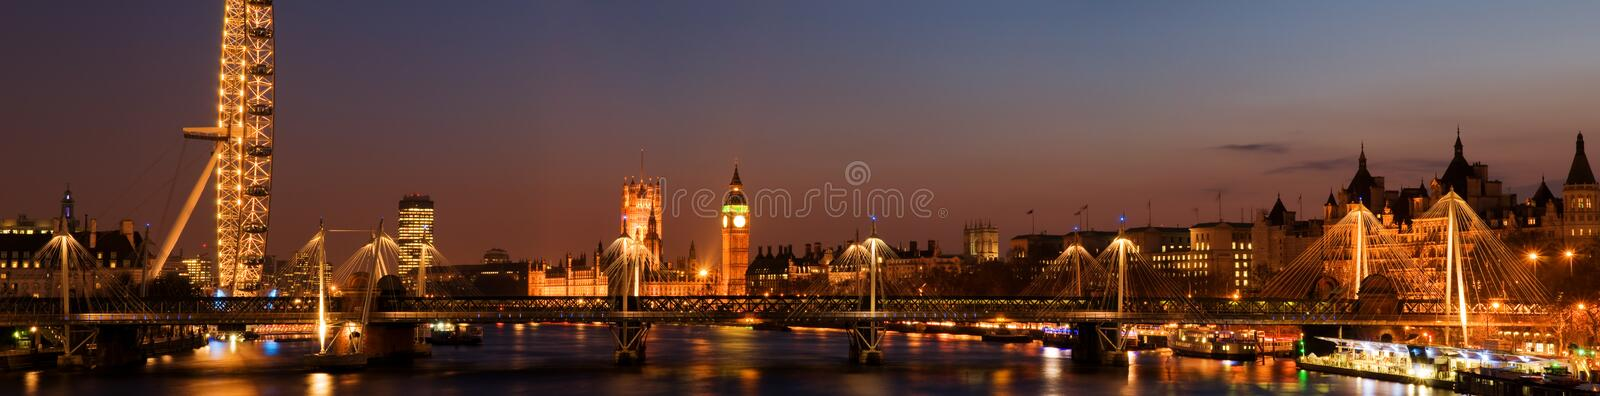 Westminster nachts. (London lizenzfreie stockfotos